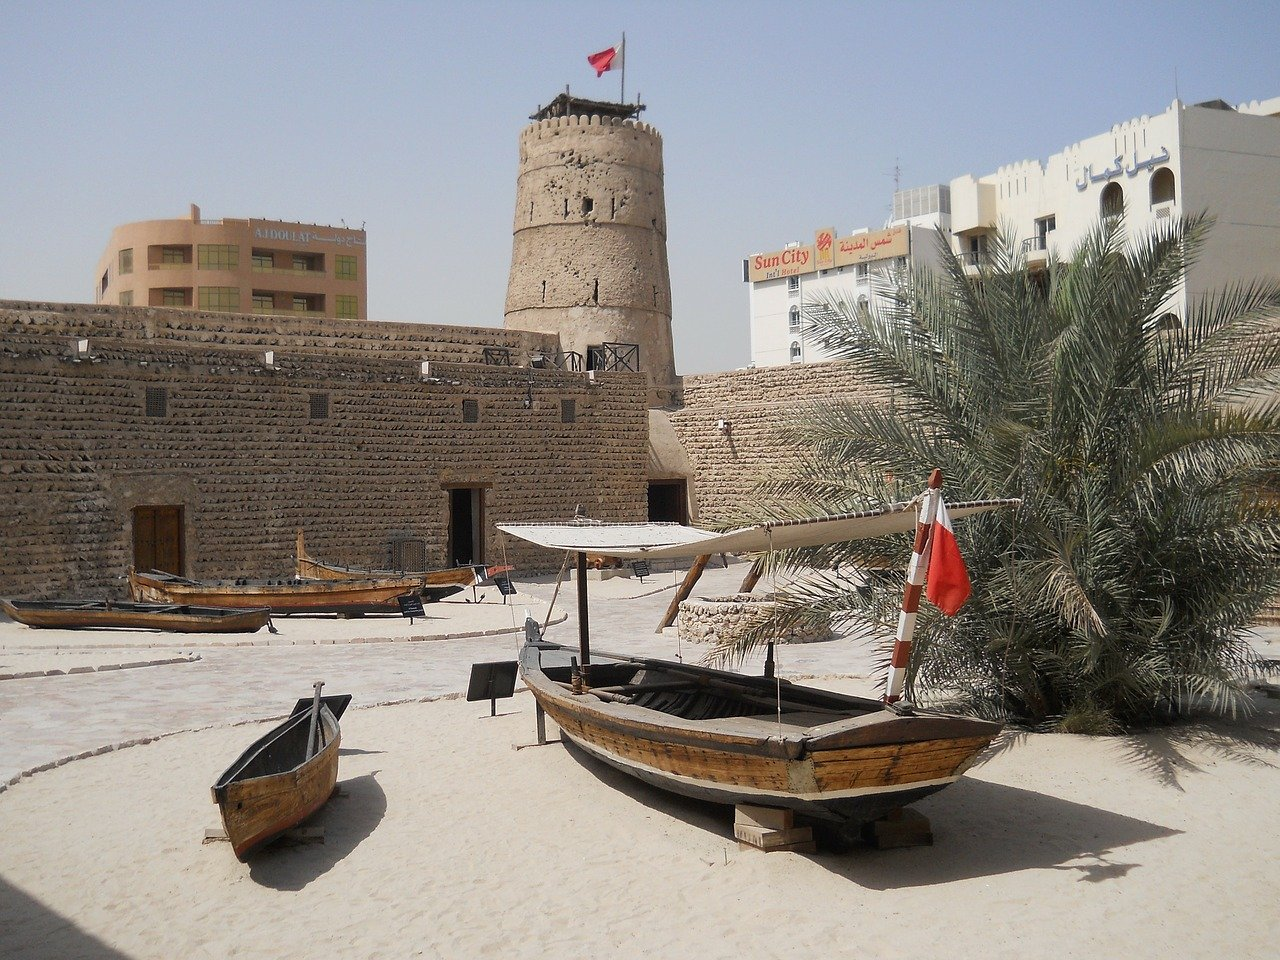 Dubai Museum from the outside